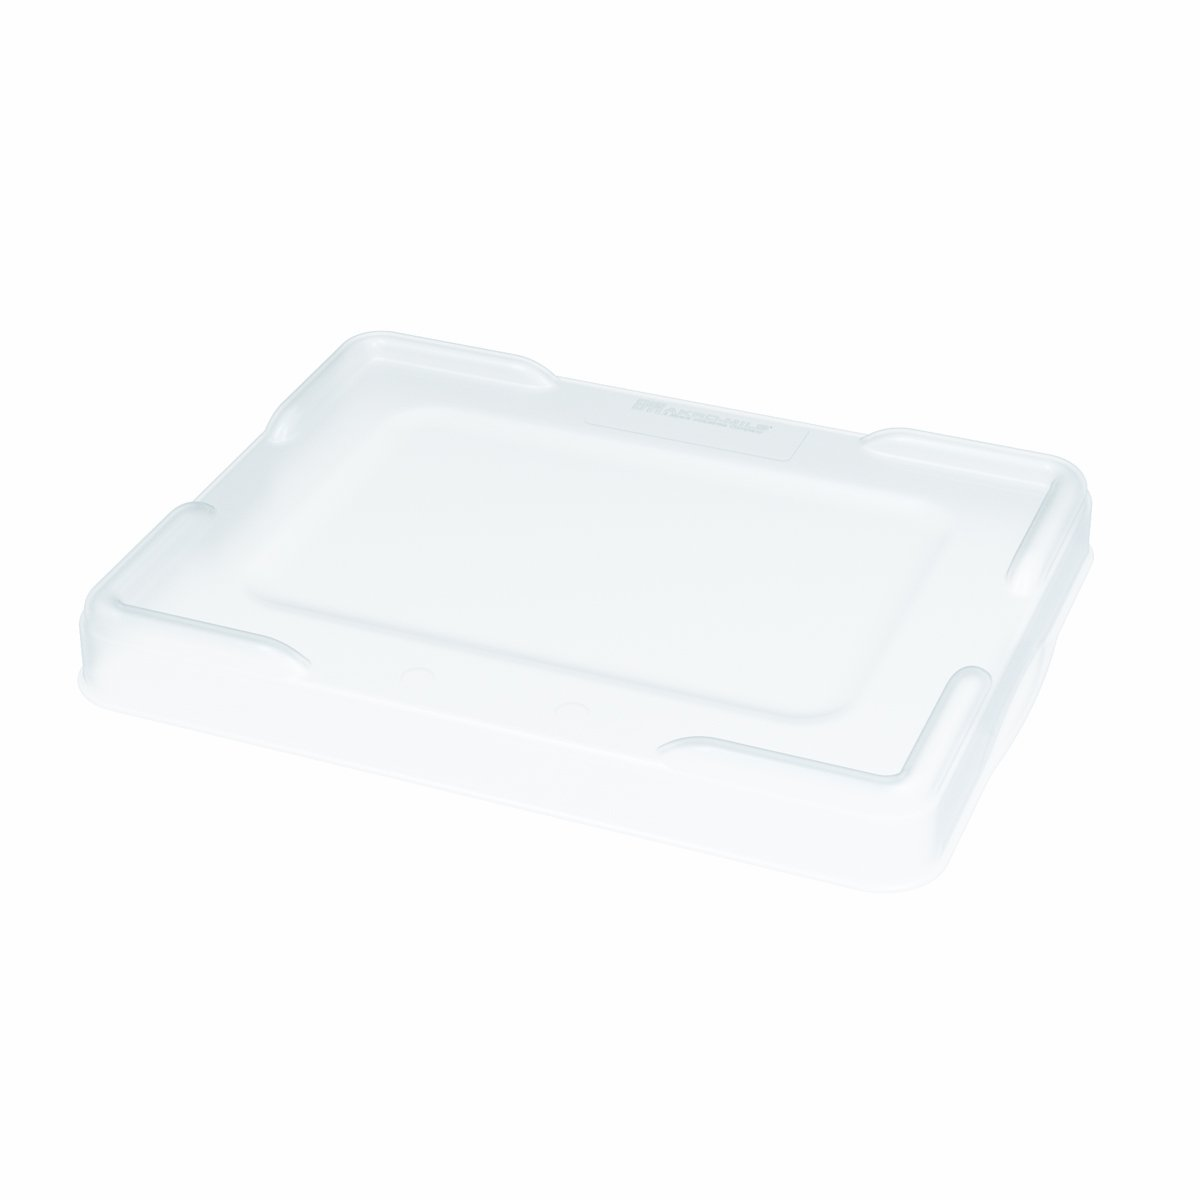 Akro-Mils 33011 Clear Snap on Plastic Lid for Akro-Mils 33105 Grid Box, Case of 10